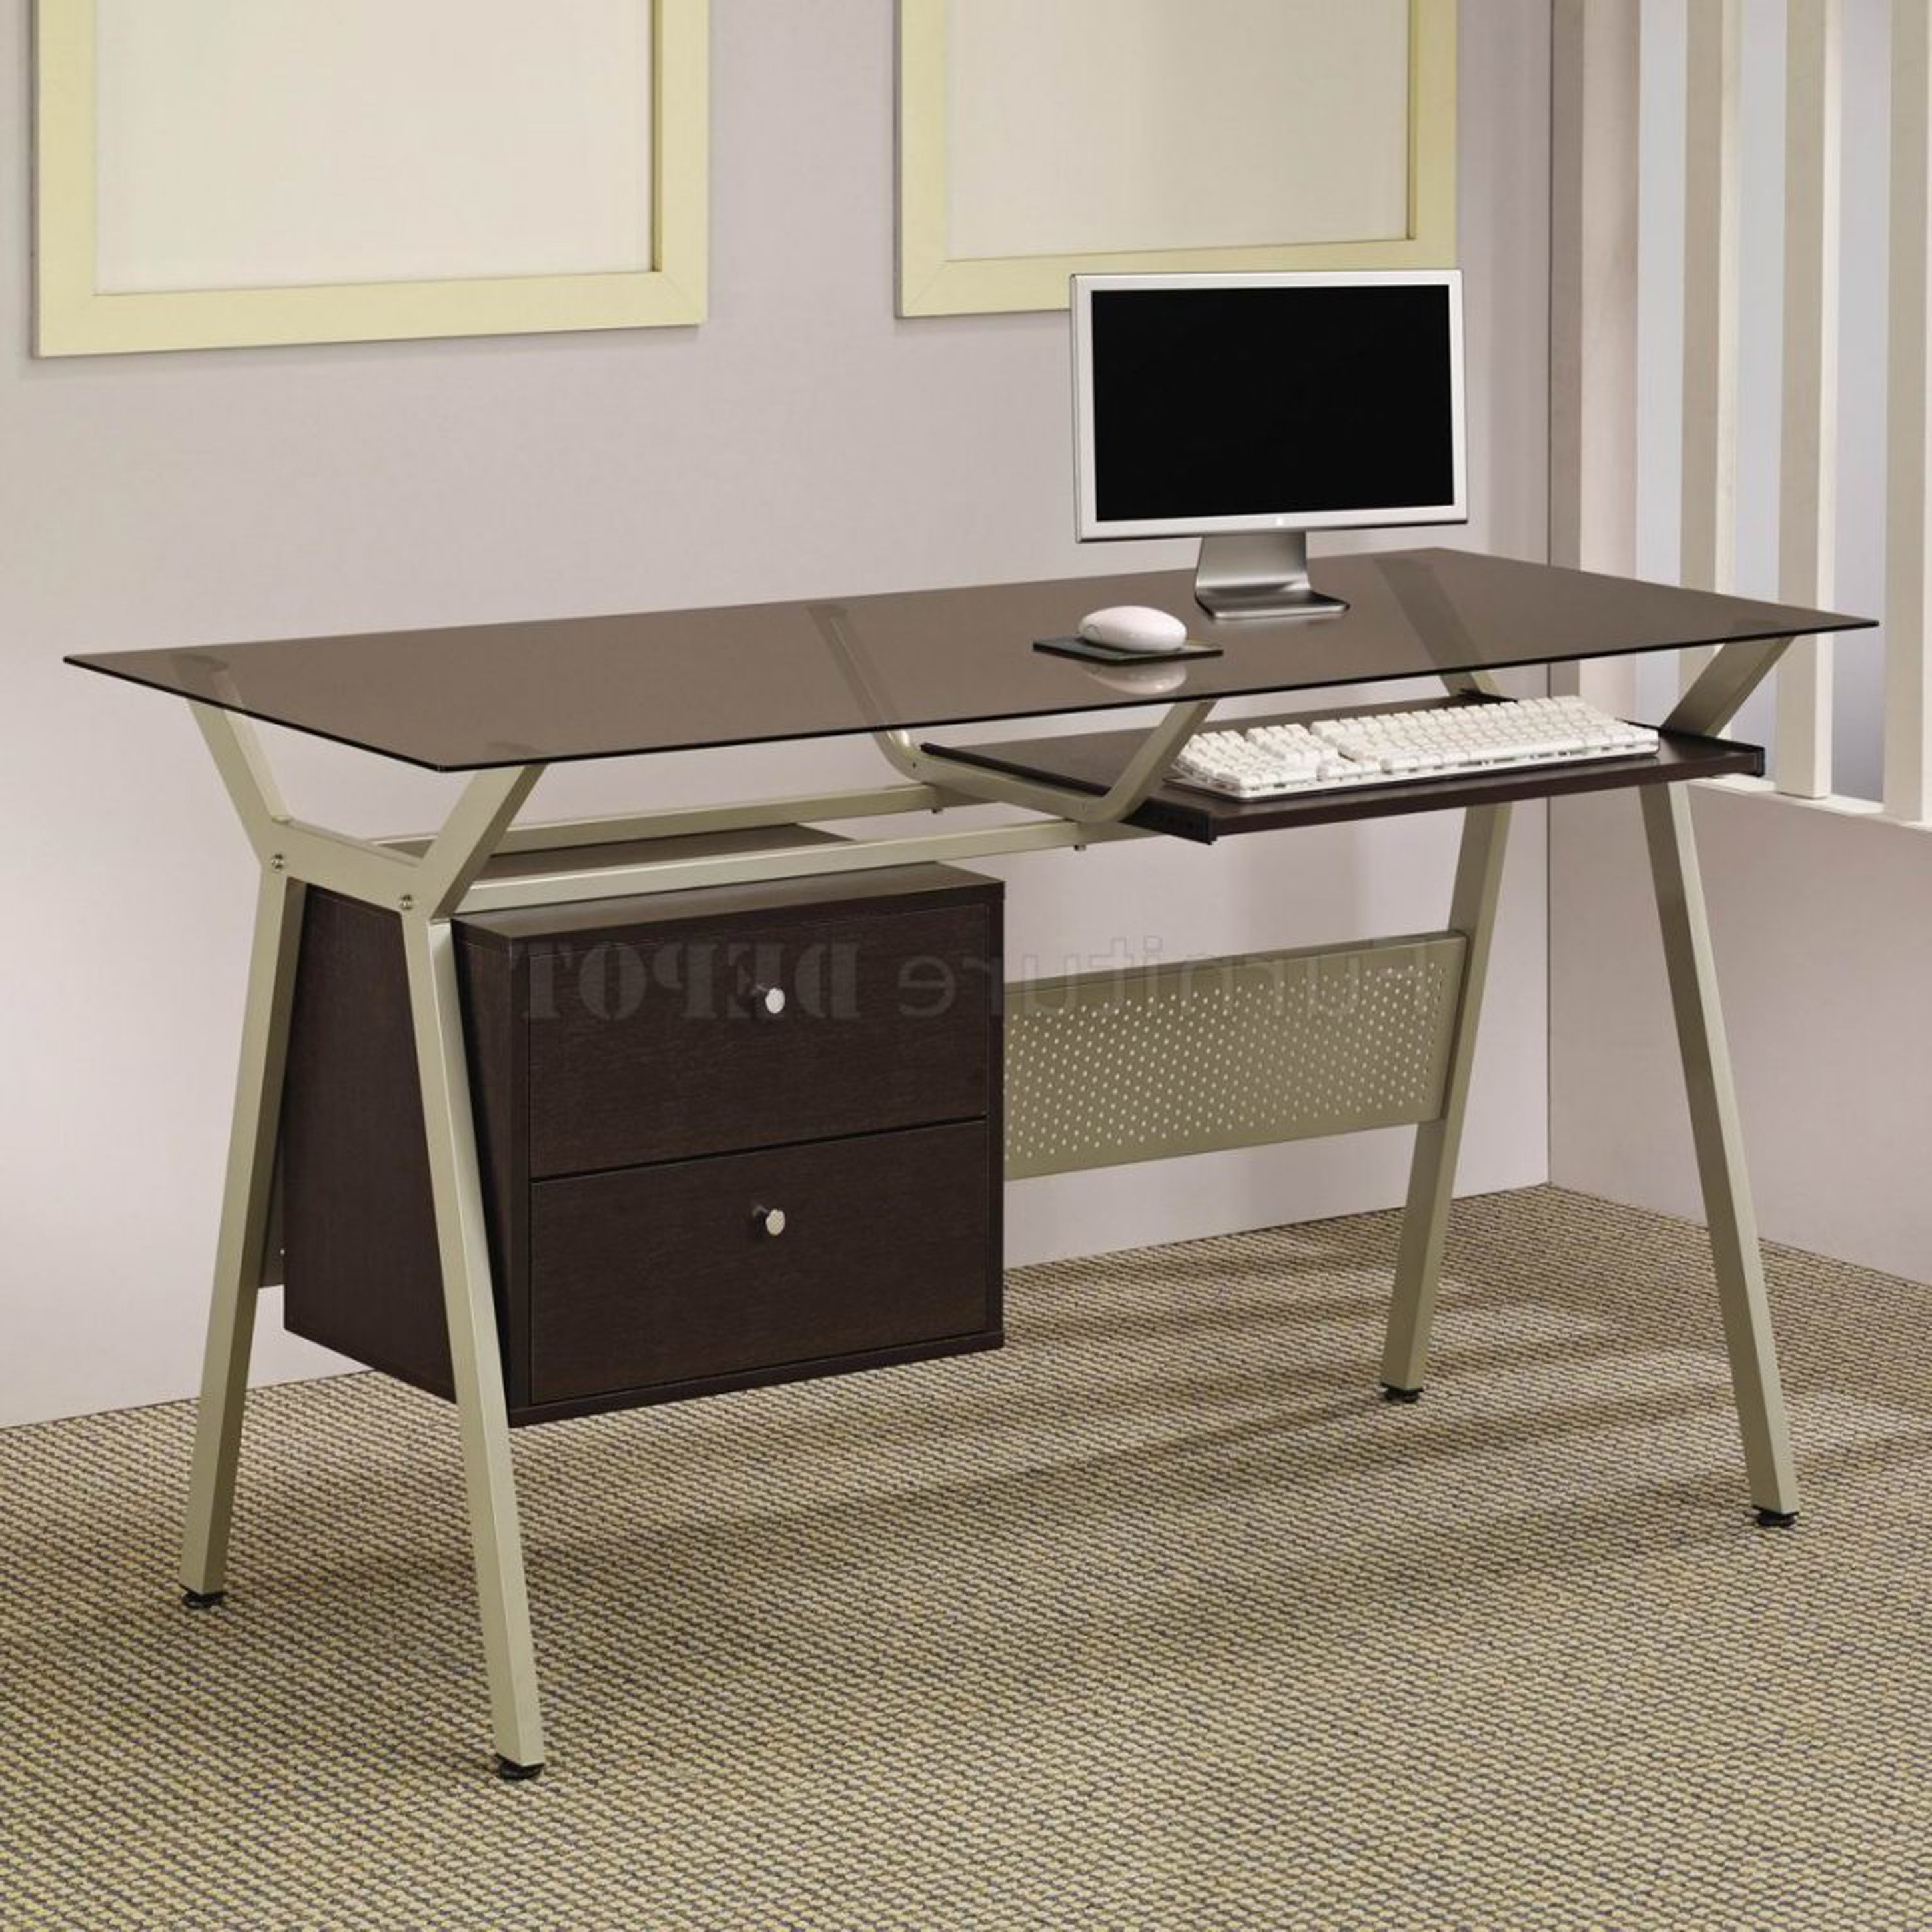 Charming Modern Home Office Desk Design Idea In Brown With White Base White Computer And Brown Floor Fabulous Modern Home Office Desk Design Ideas (View 27 of 30)